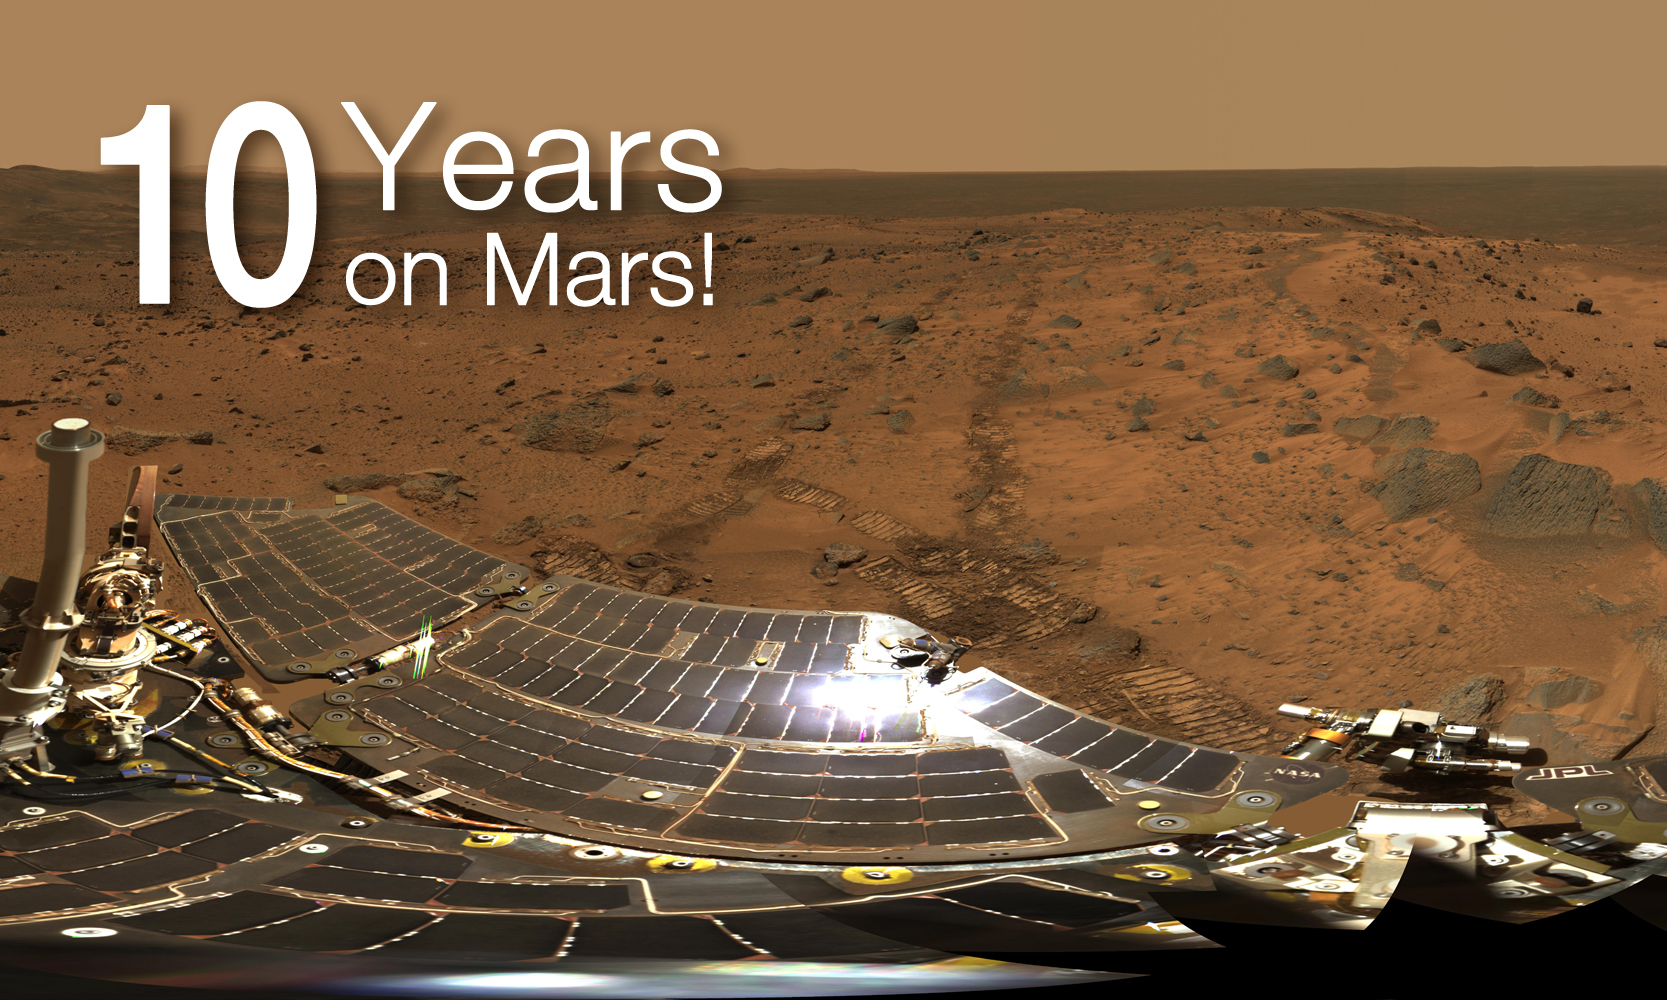 mars rover quote - photo #17